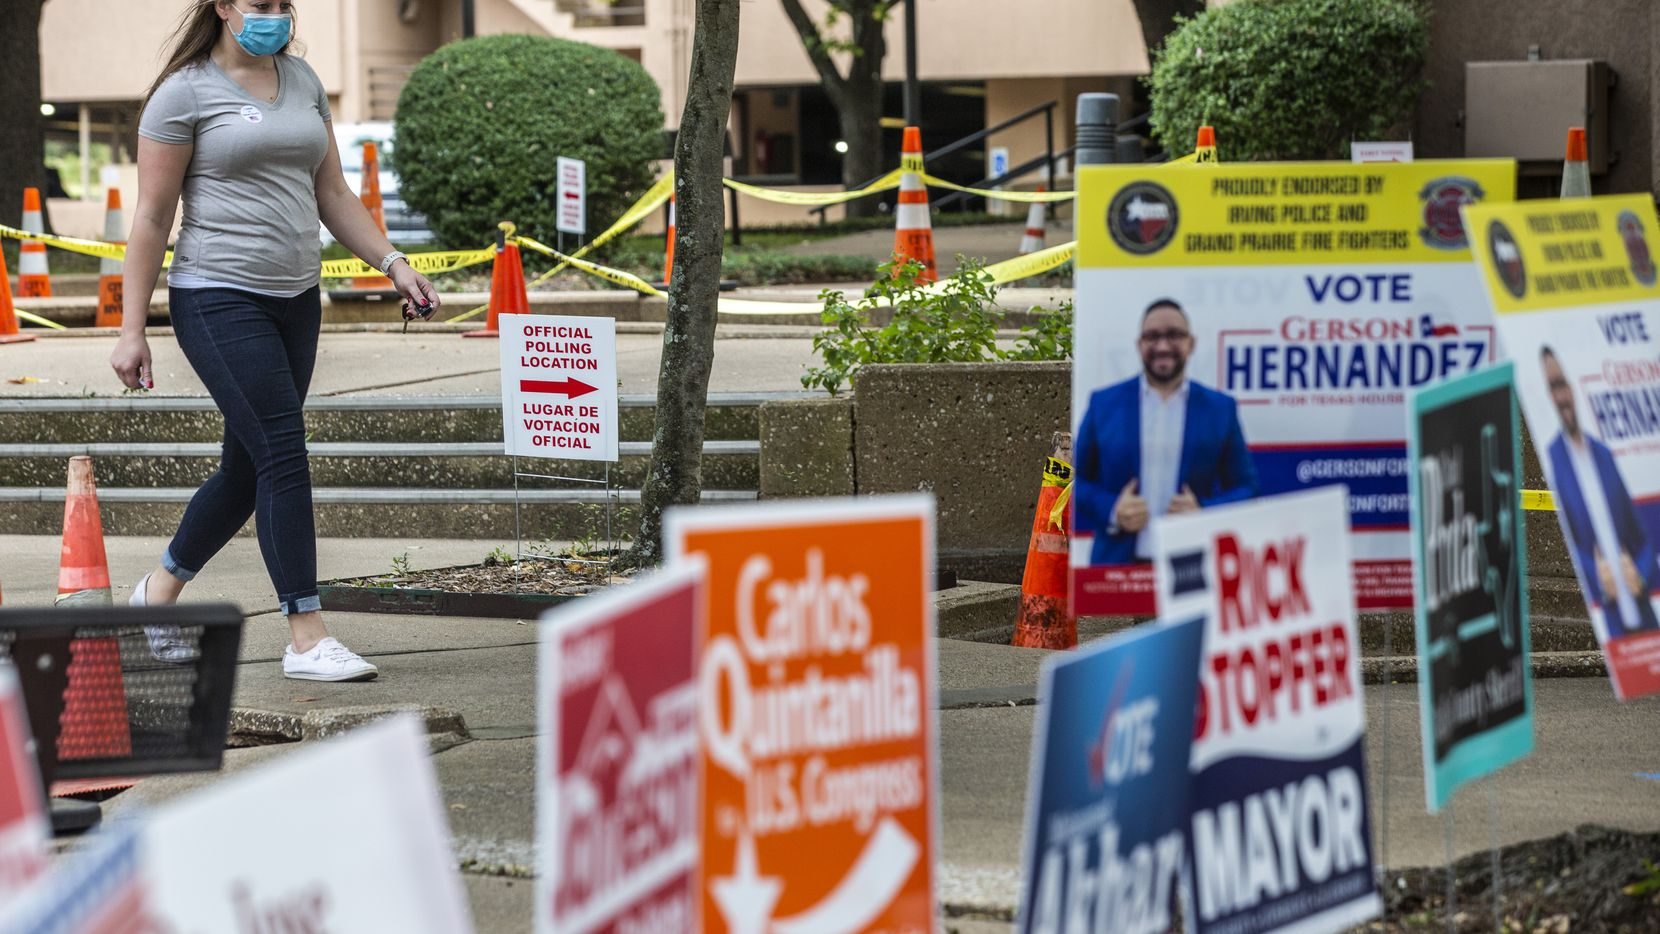 Alyse Brown walks past campaign signs after casting a ballot during the general election early voting period at Irving City Hall in Irv,ing, Texas on Wednesday, Oct. 21, 2020.